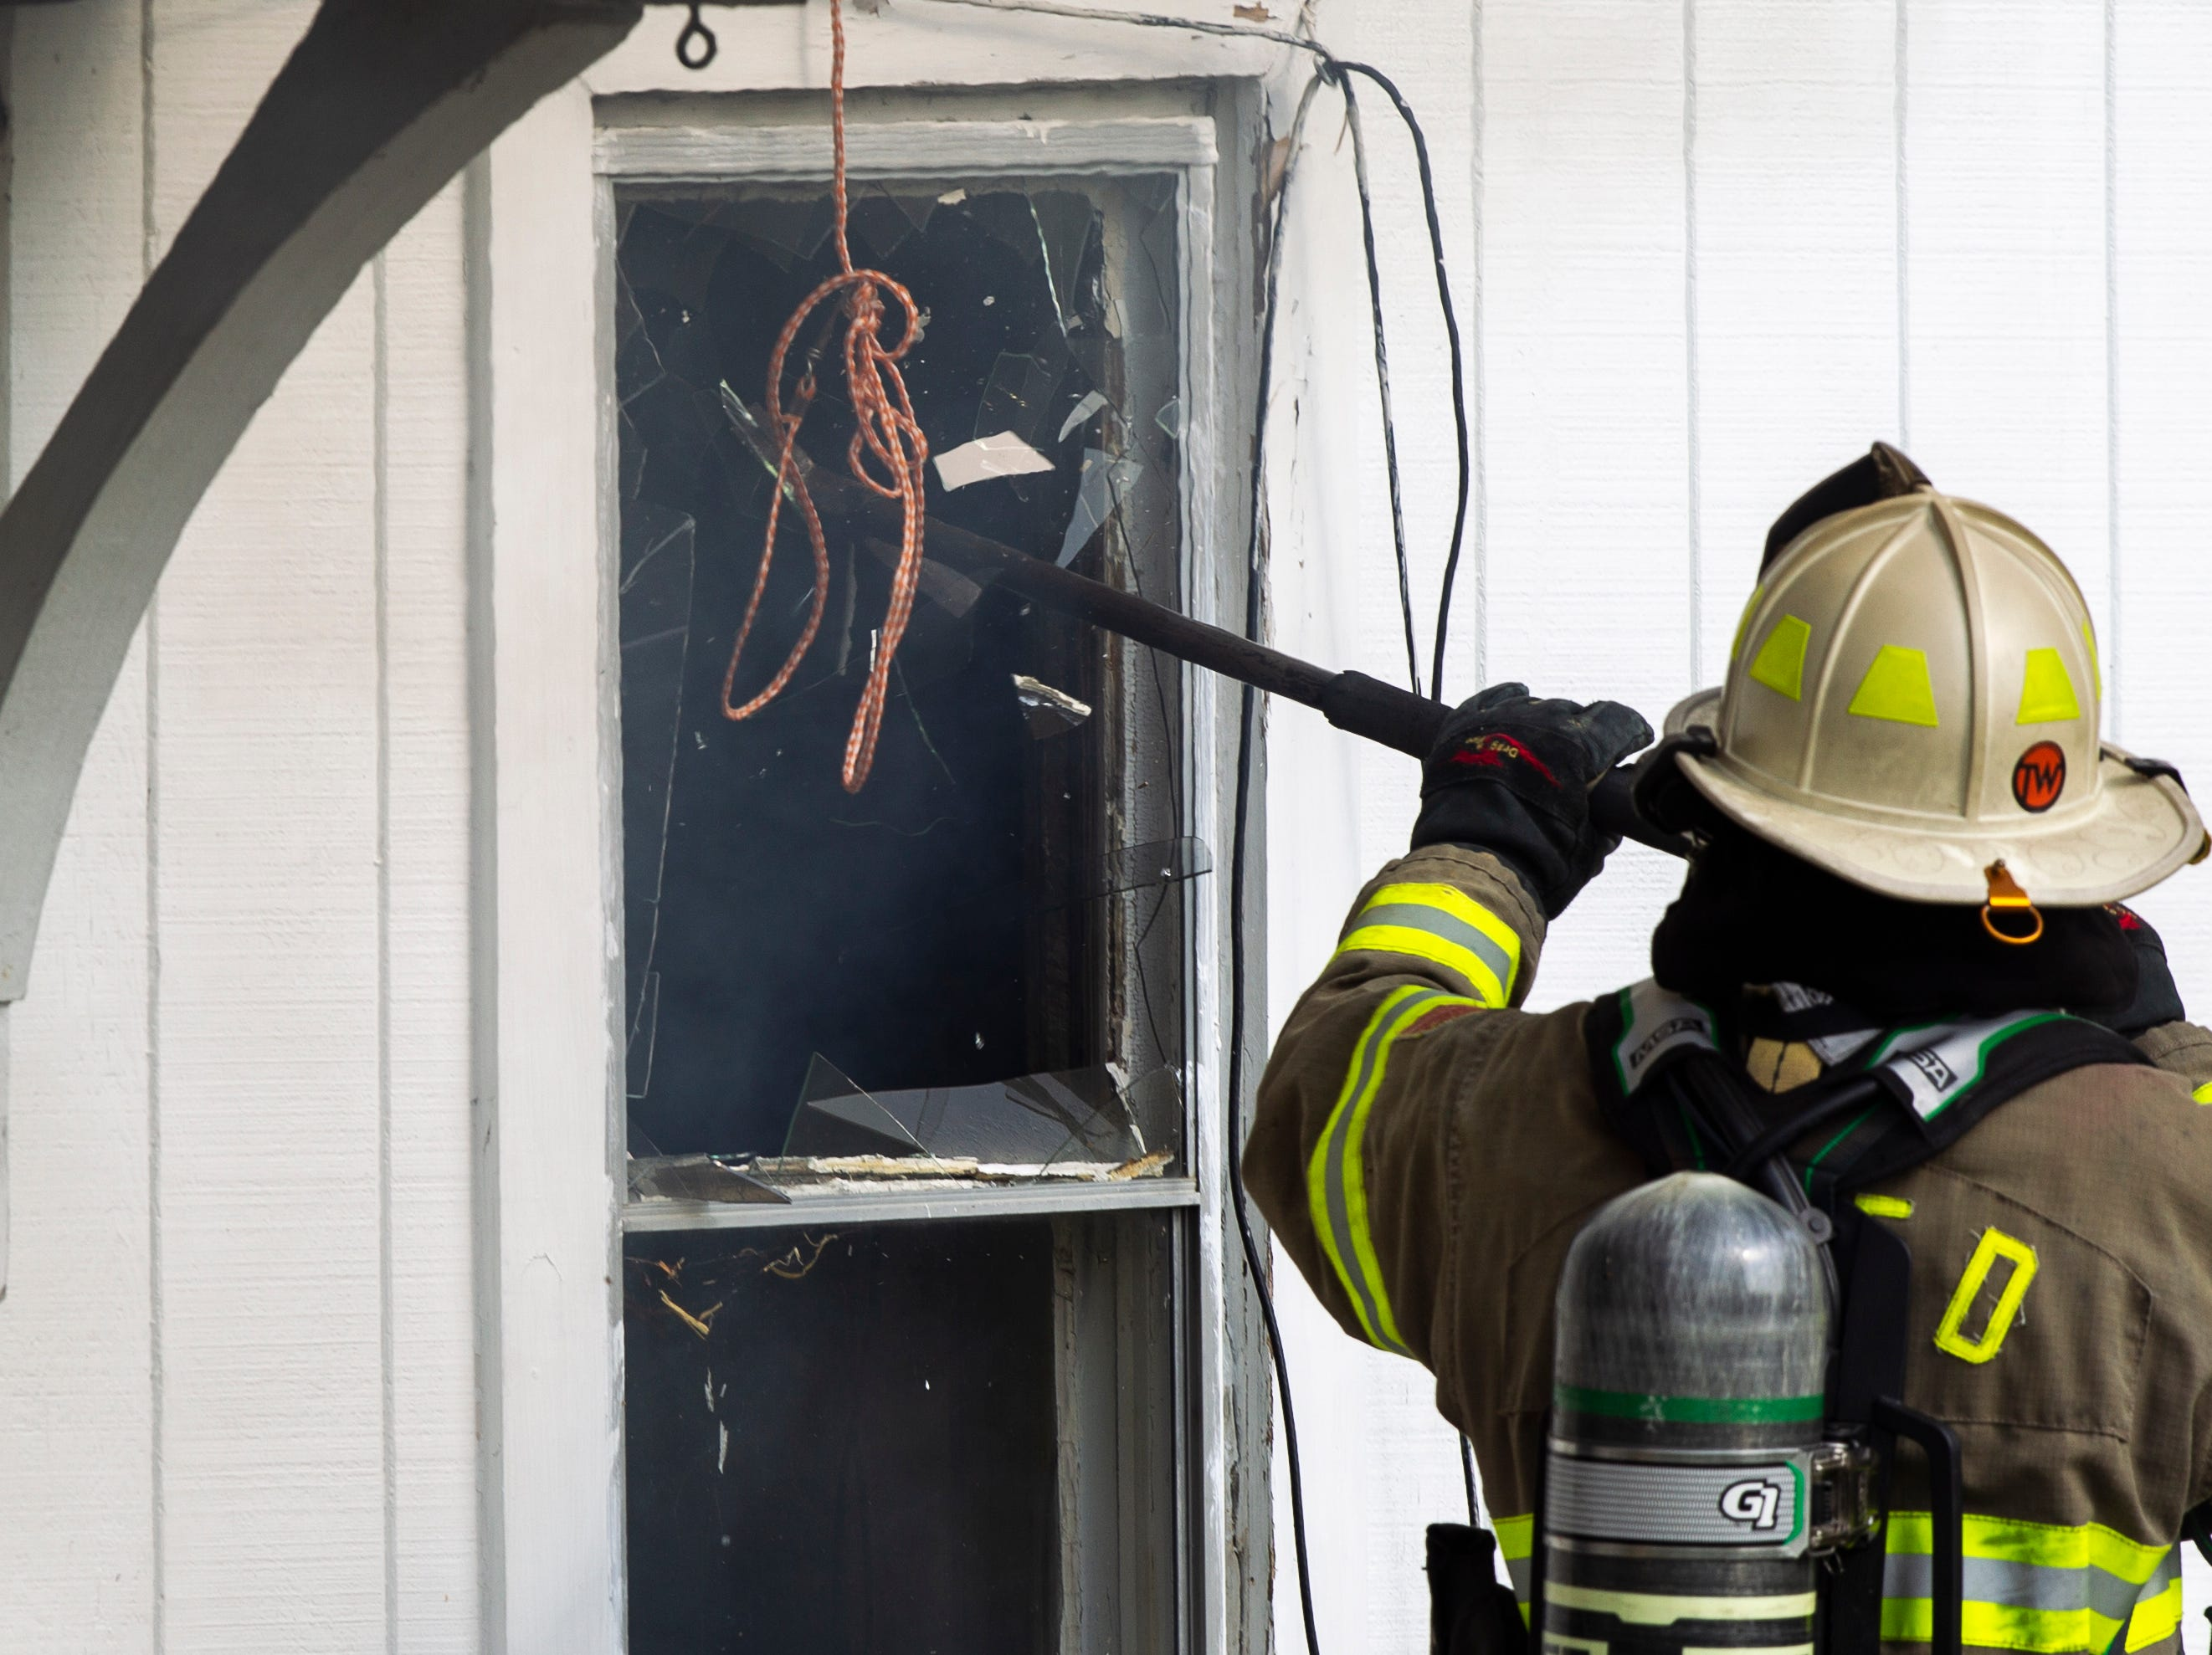 Chris Kochanny of the North Liberty Fire Department breaks out a window during controlled burn fire training exercise of a farm house on Saturday, Oct. 27, 2018, on the east side of Liberty High School in North Liberty.